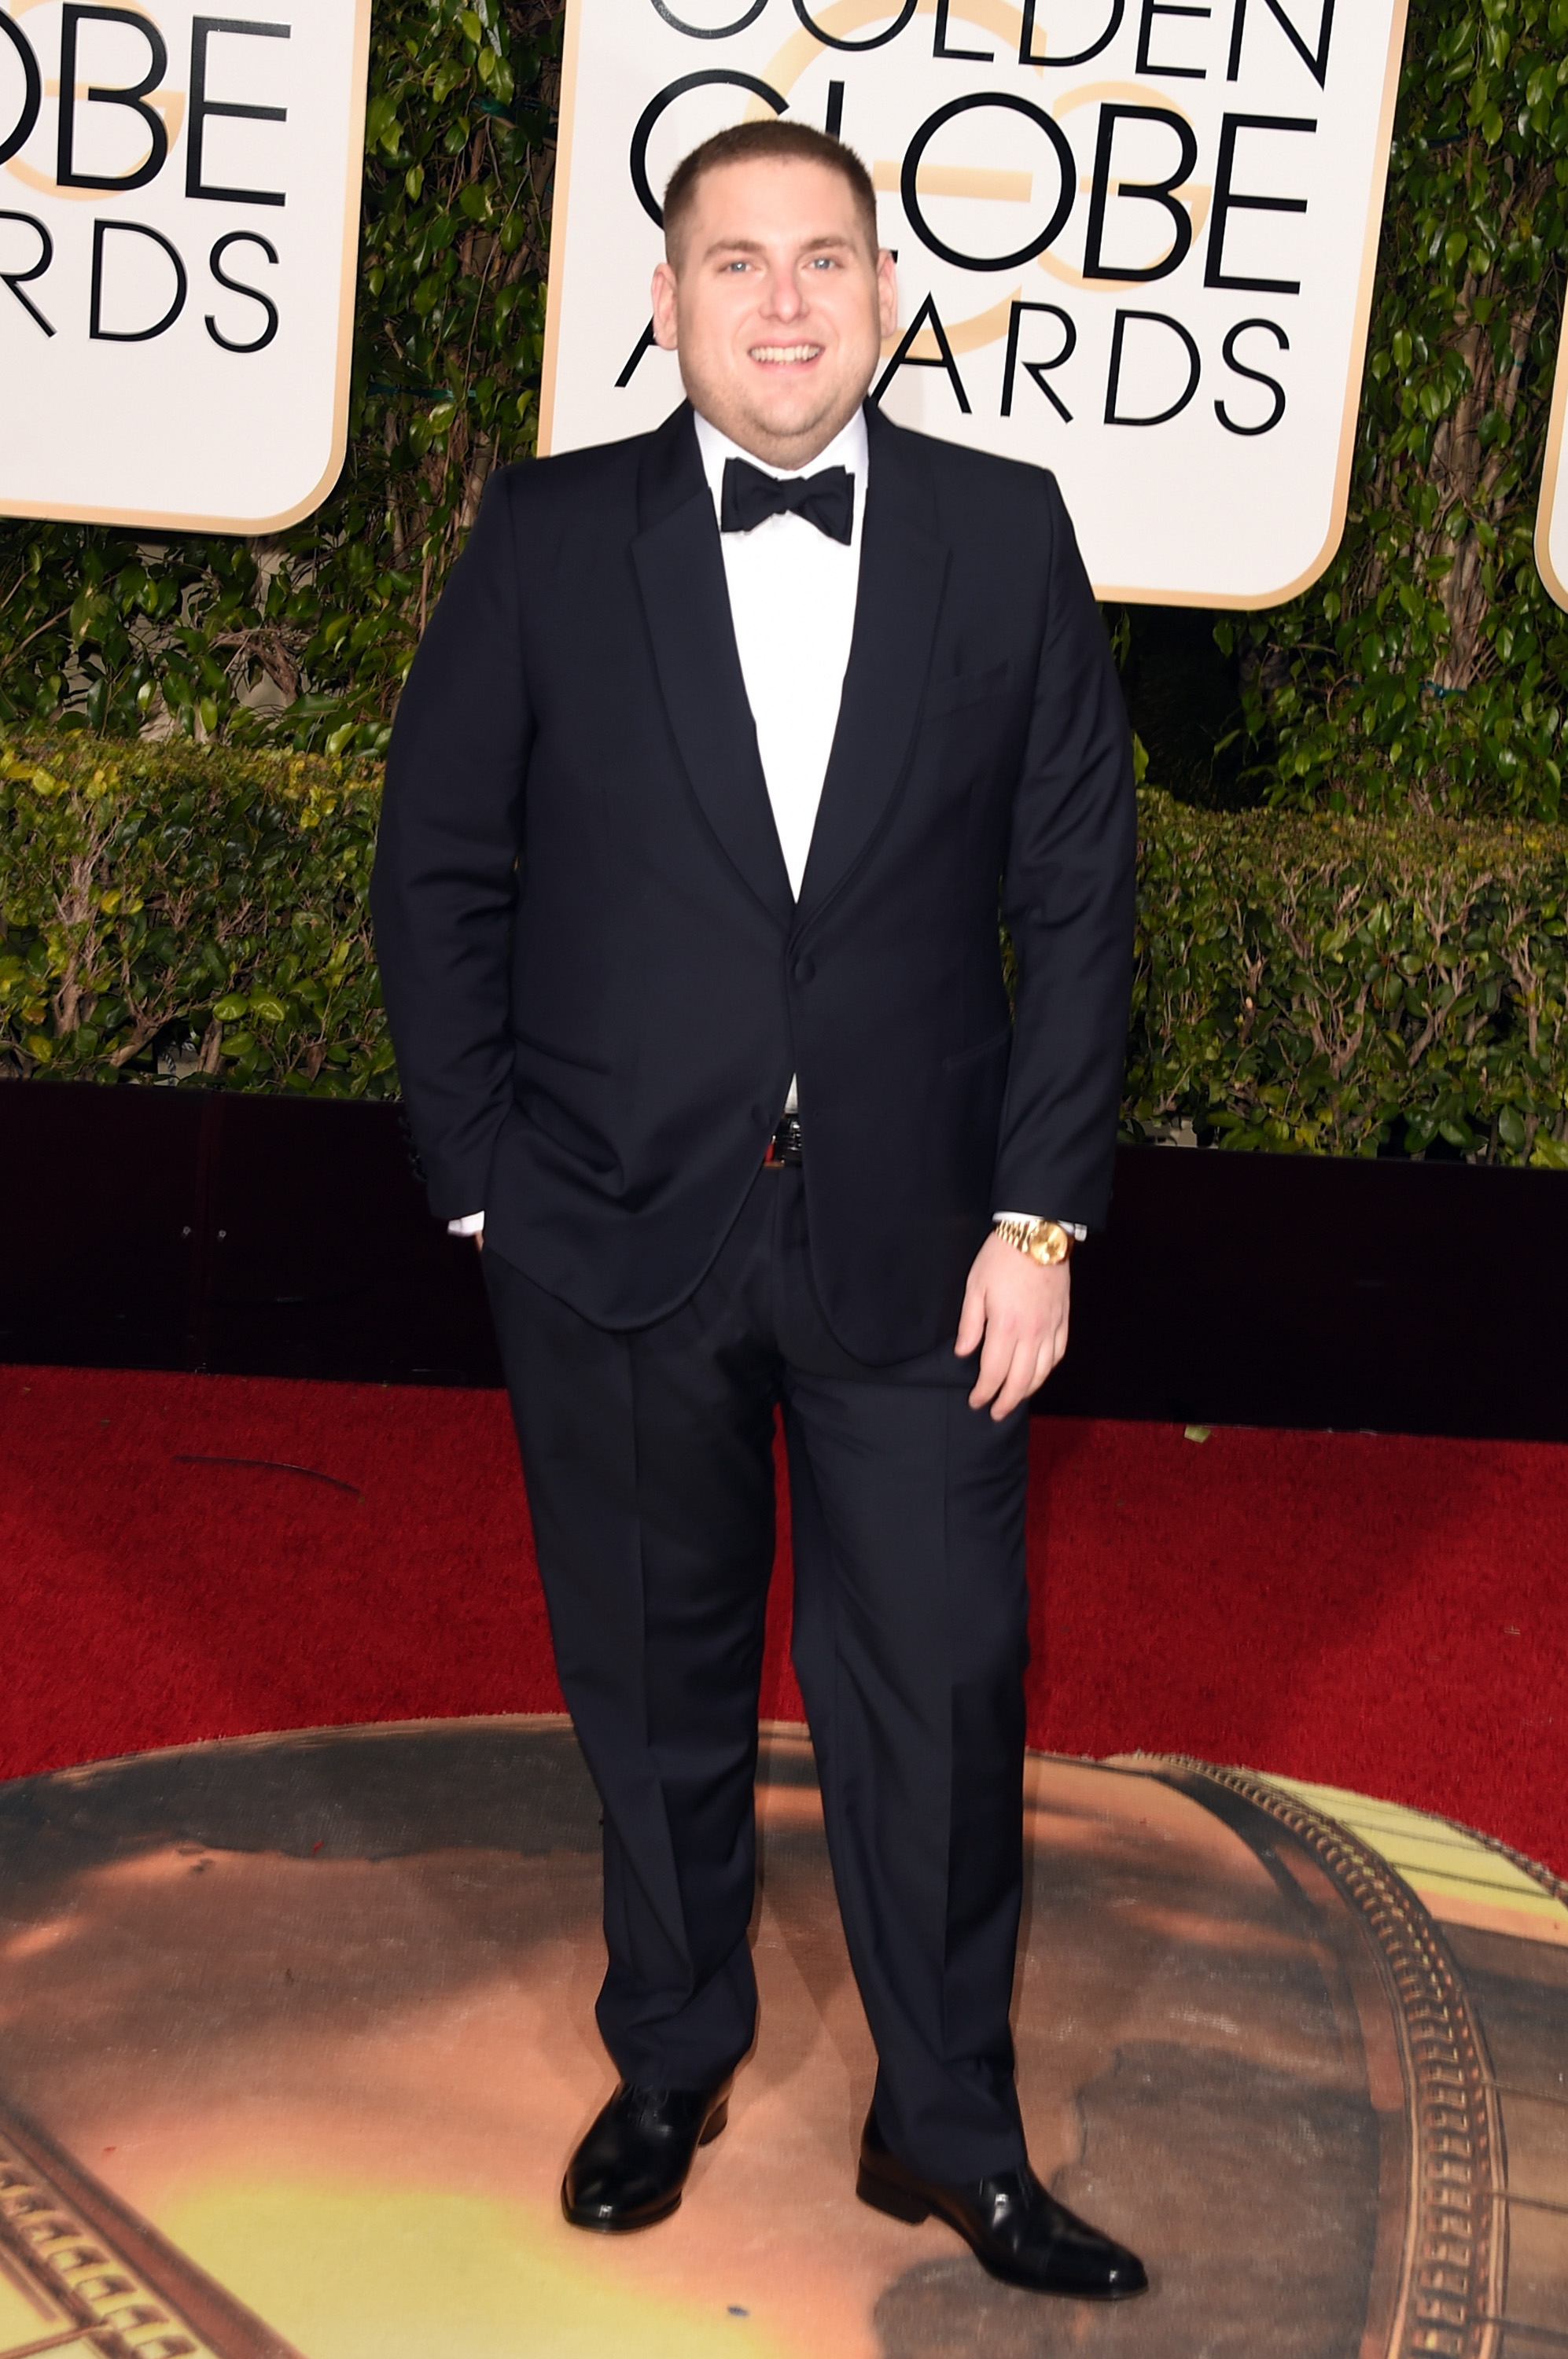 Jonah Hill arrives to the 73rd Annual Golden Globe Awards on Jan. 10, 2016 in Beverly Hills.